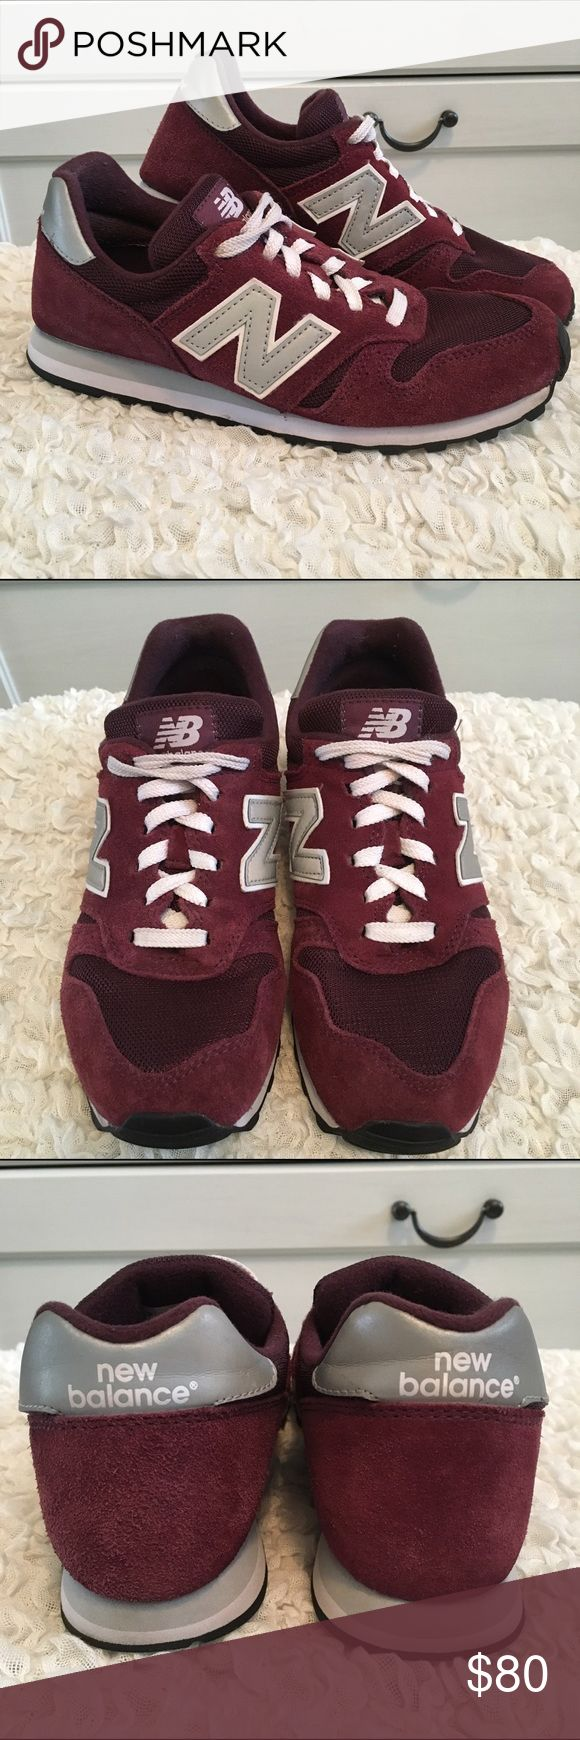 new balance 373 color